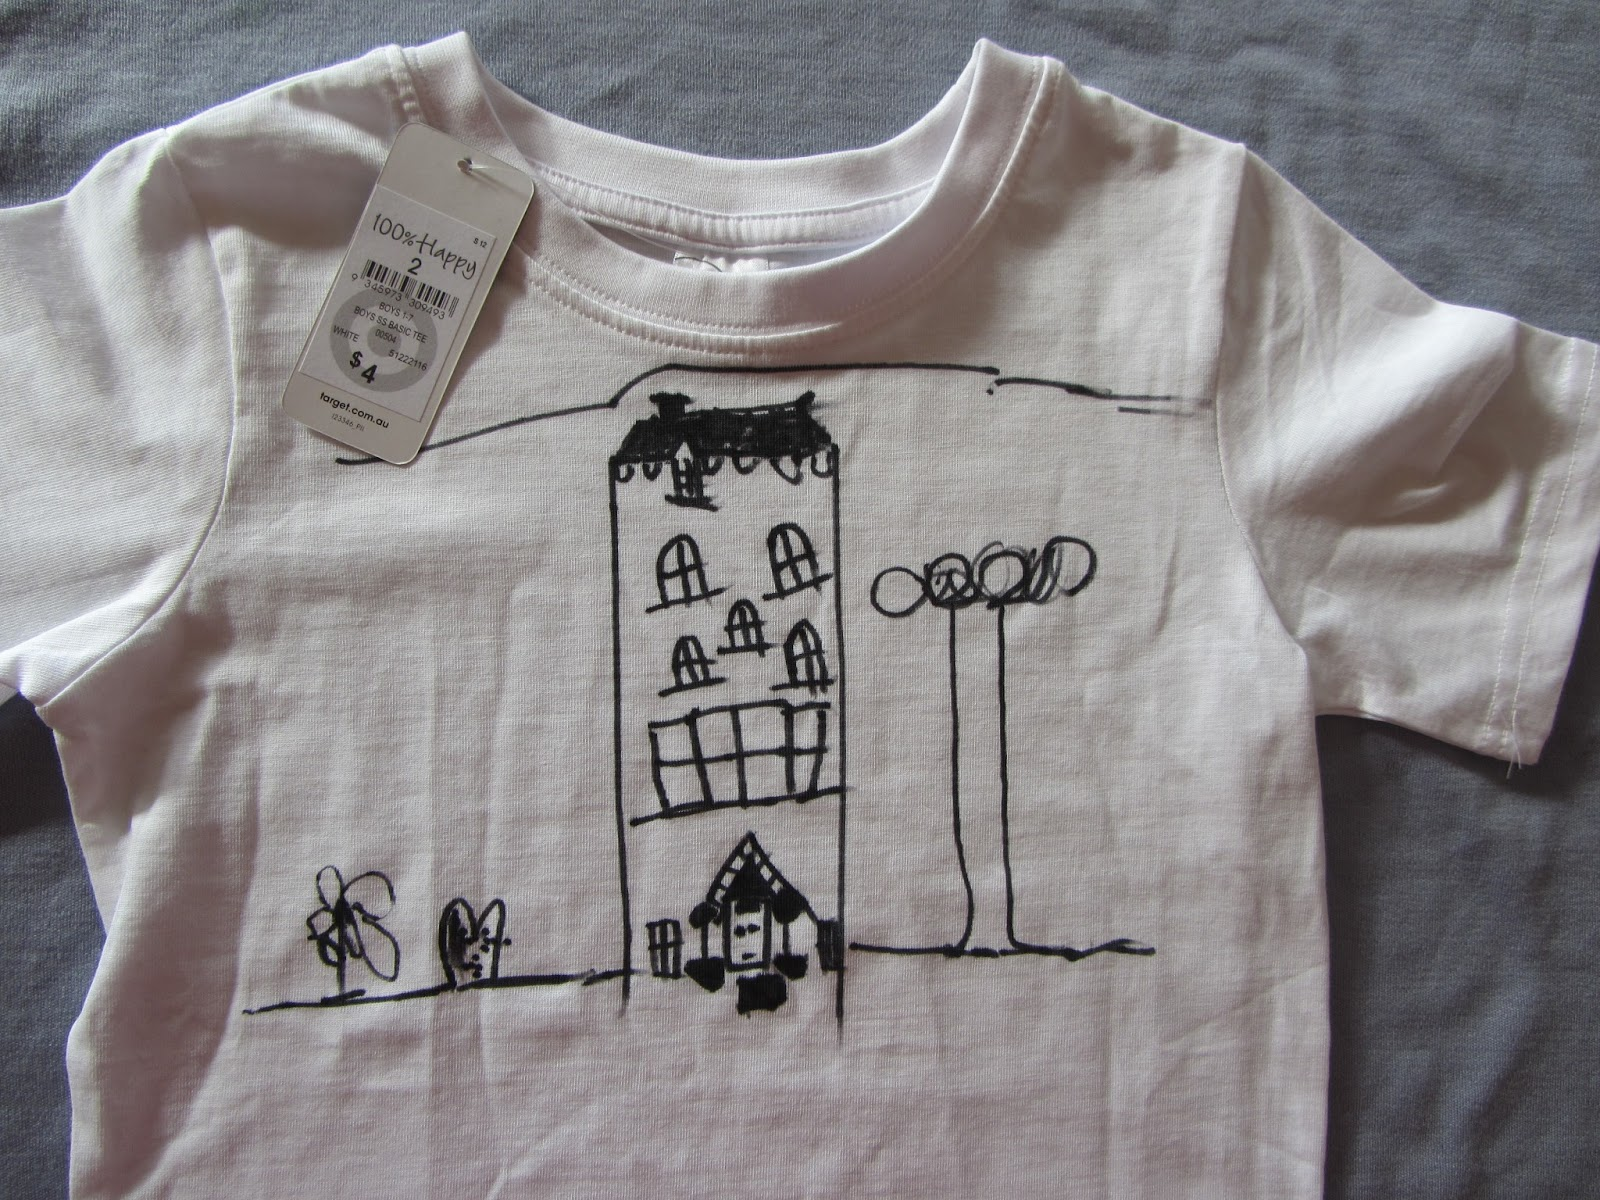 Design t shirt hand made - You Could Also Easily Use Fleecy Lined Jumpers For This Project And They Would Be A Bit More Suitable For Winter Than T Shirts